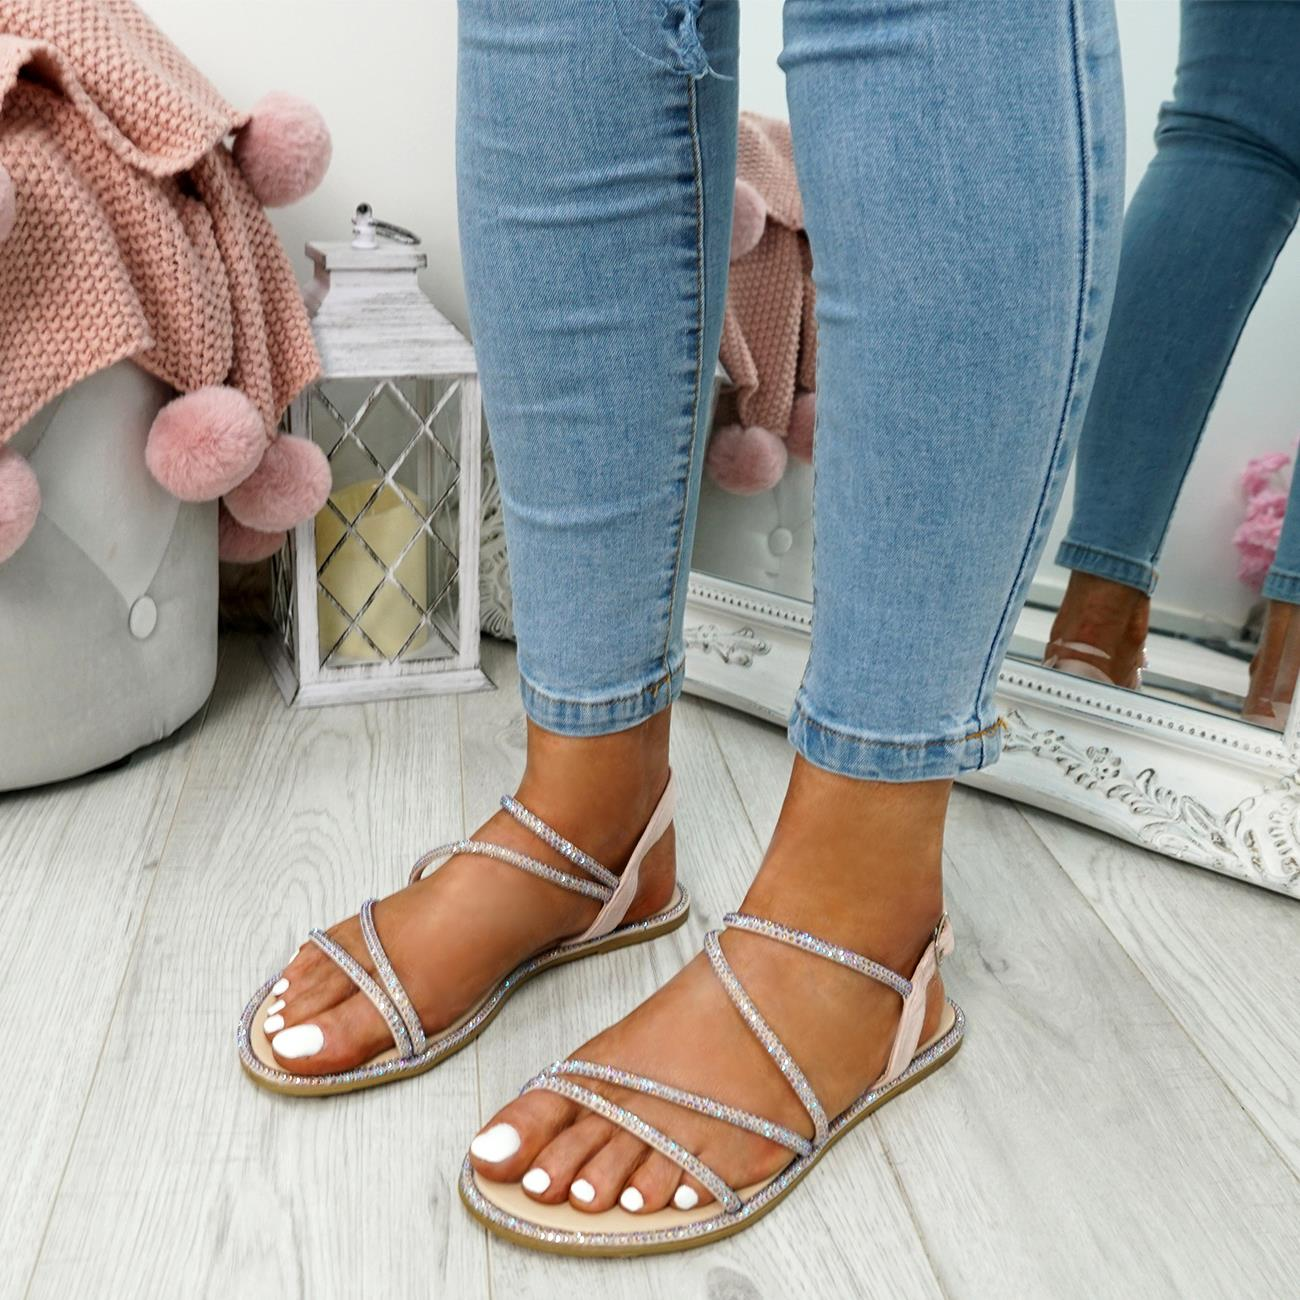 WOMENS-LADIES-STUDDED-ANKLE-STRAP-FLAT-SHOES-PARTY-CLUB-SANDALS-SHOES-SIZE-UK thumbnail 15